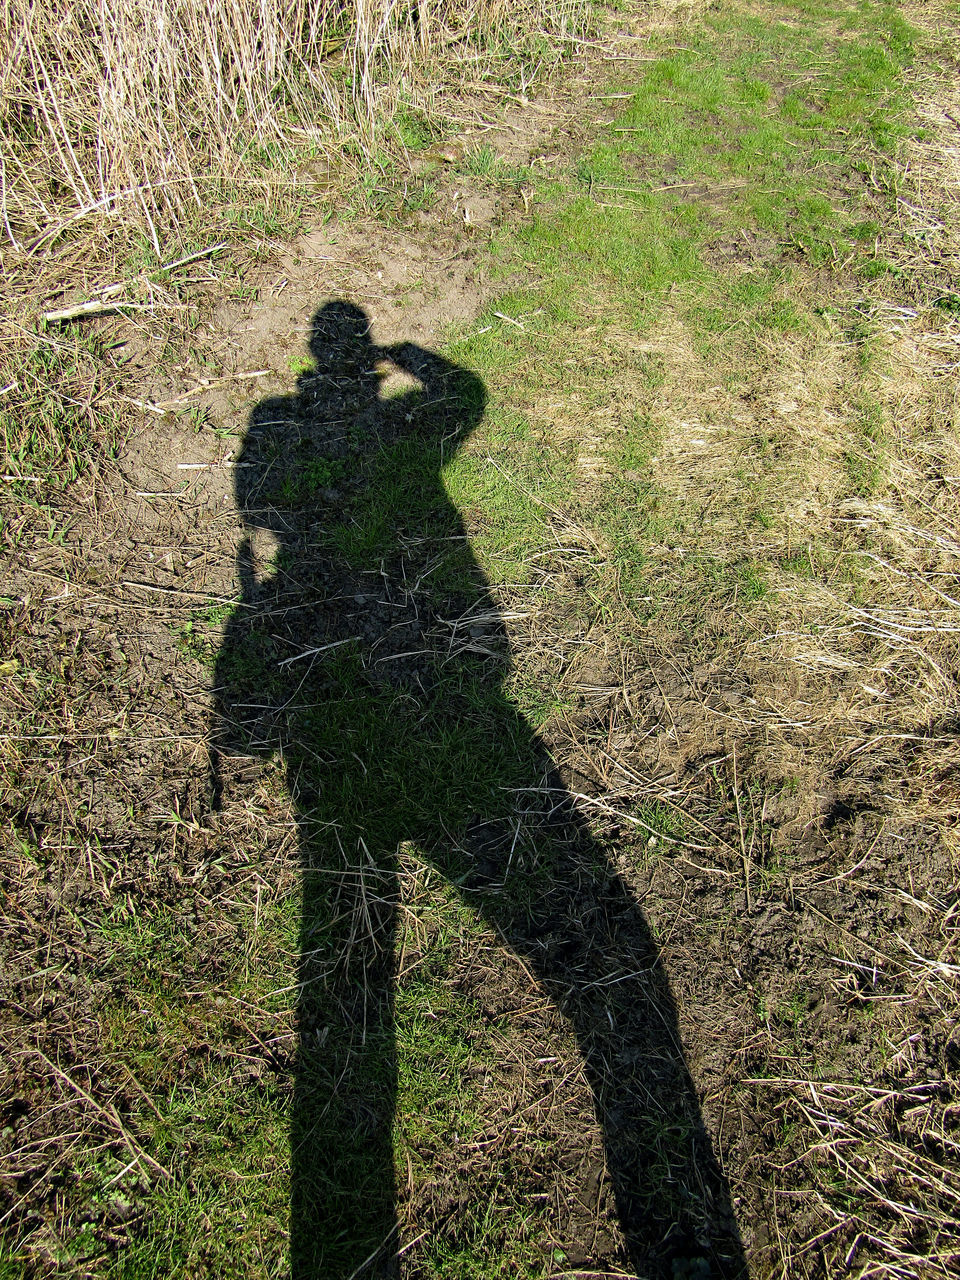 field, grass, real people, shadow, day, outdoors, standing, one person, nature, people